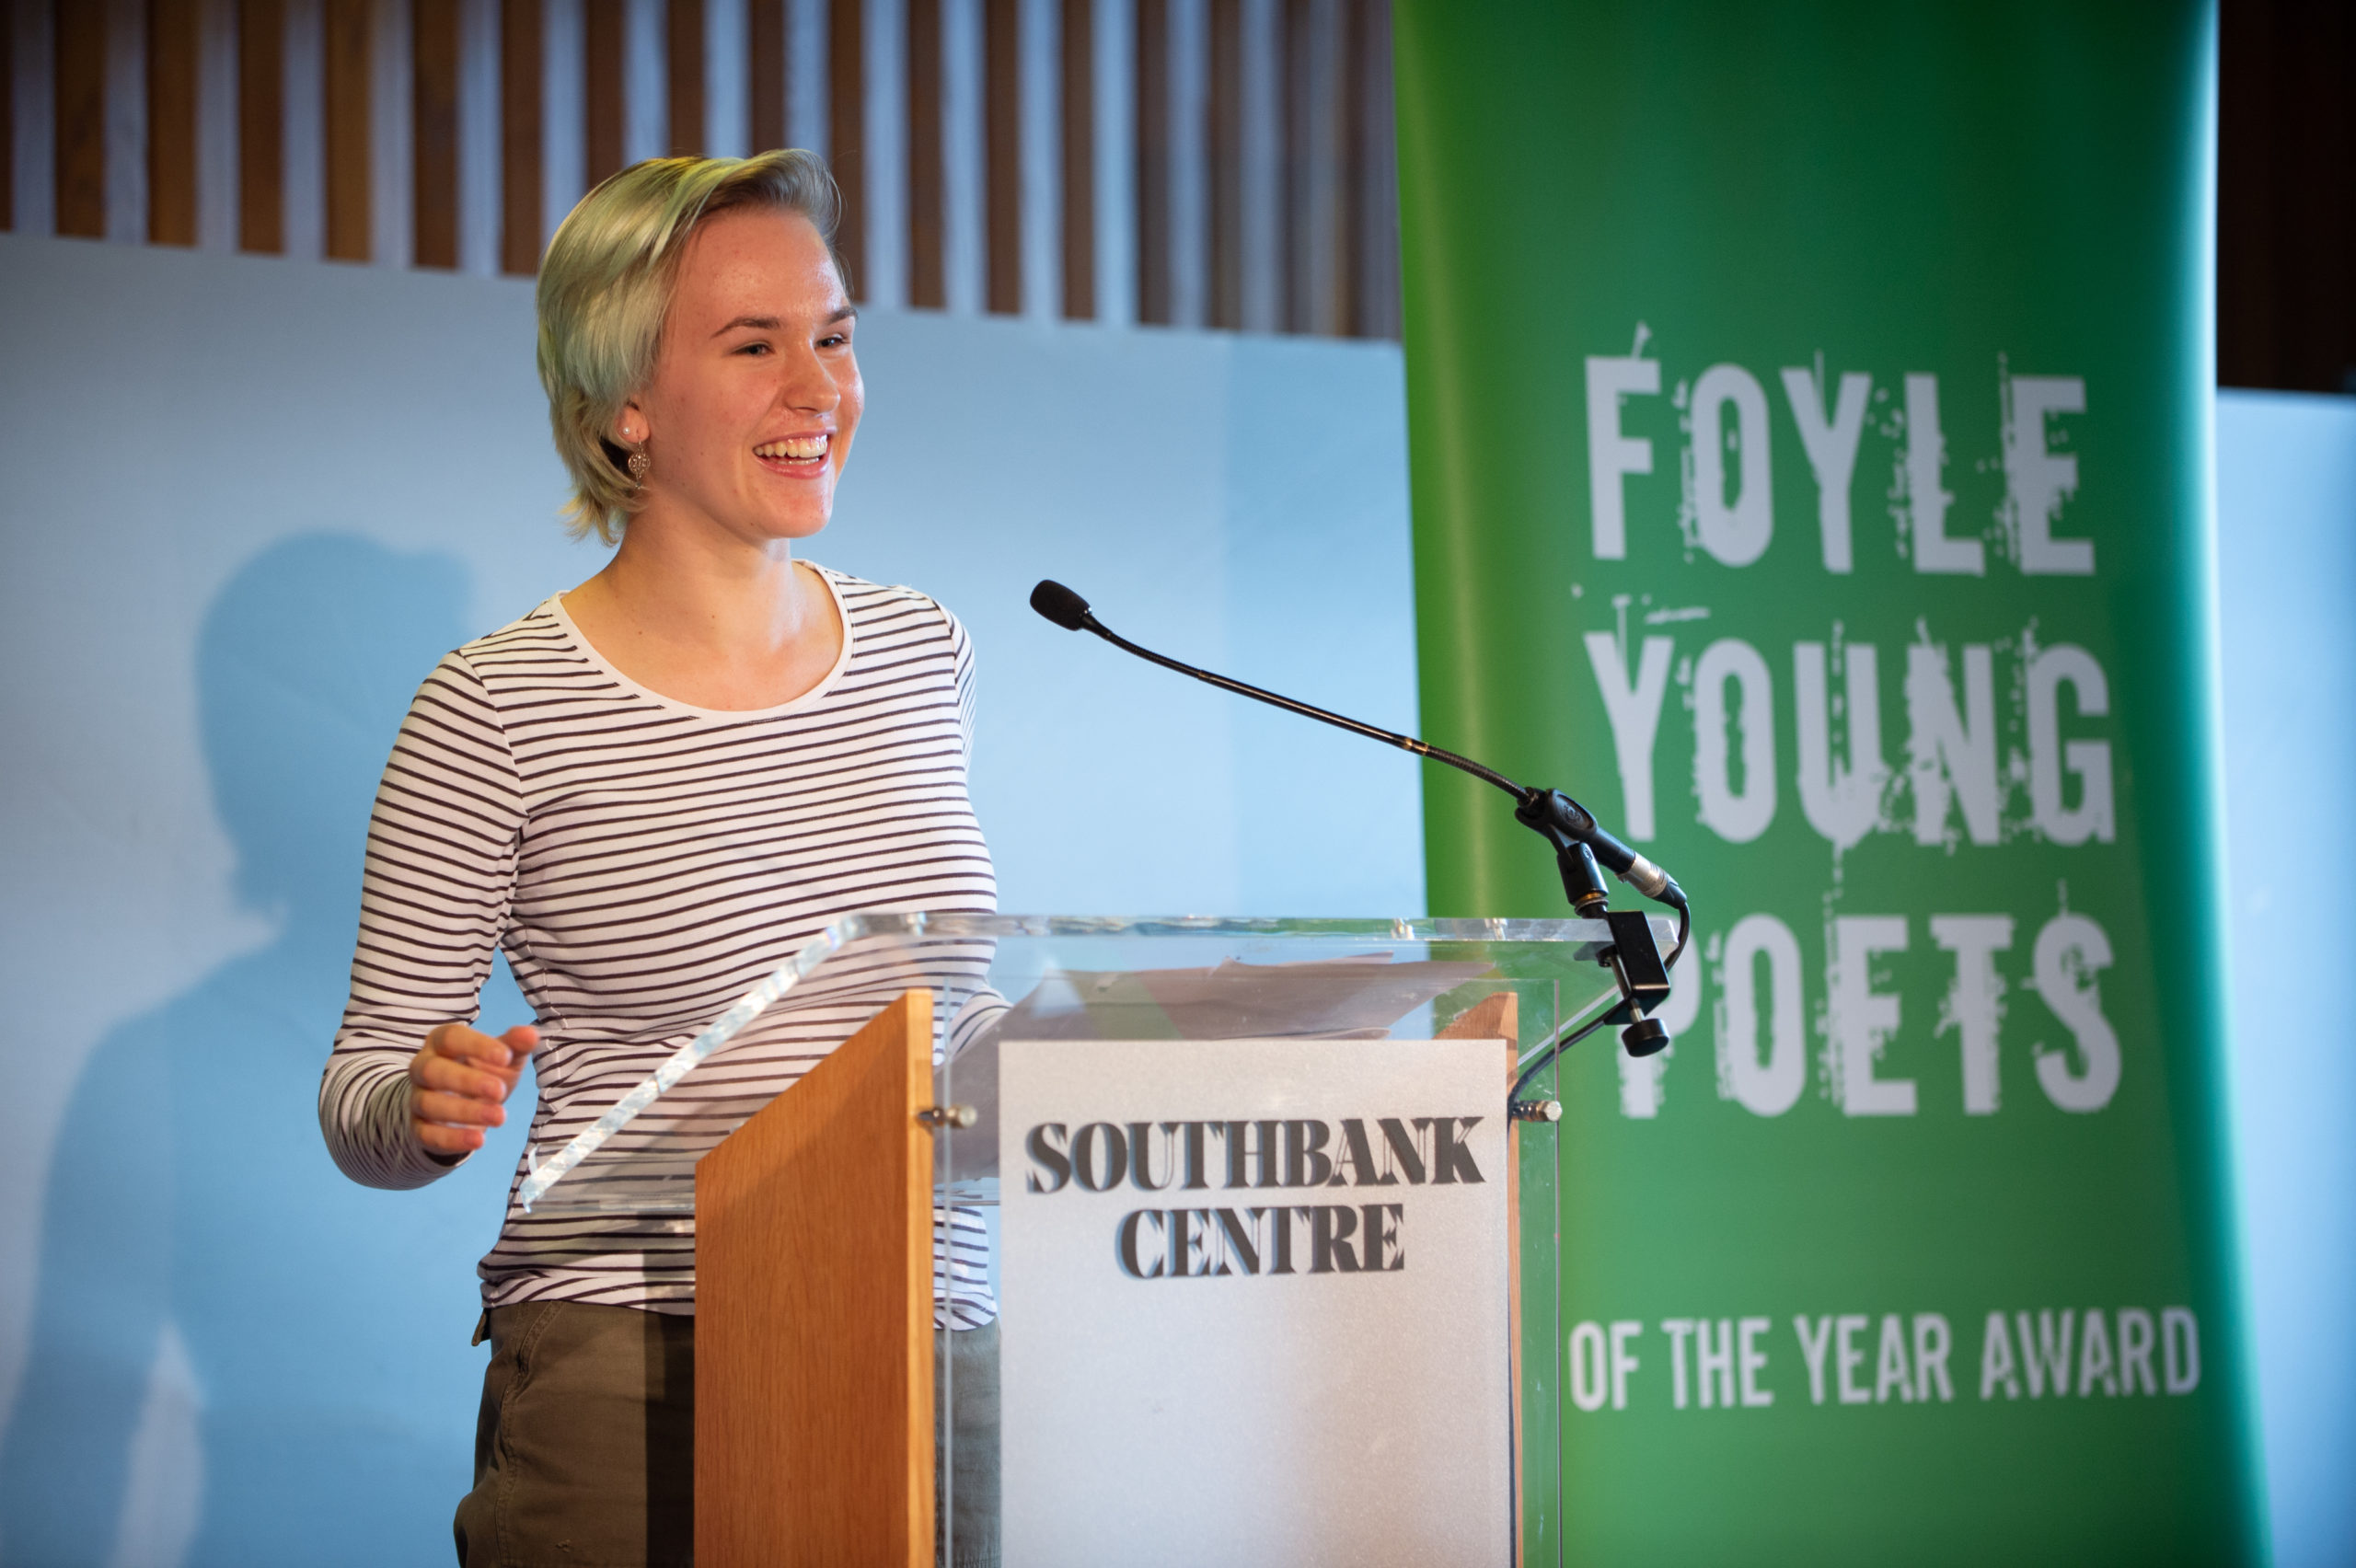 Elizabeth Thatcher smiles reading at a podium next to a green banner that says Foyle Young Poets